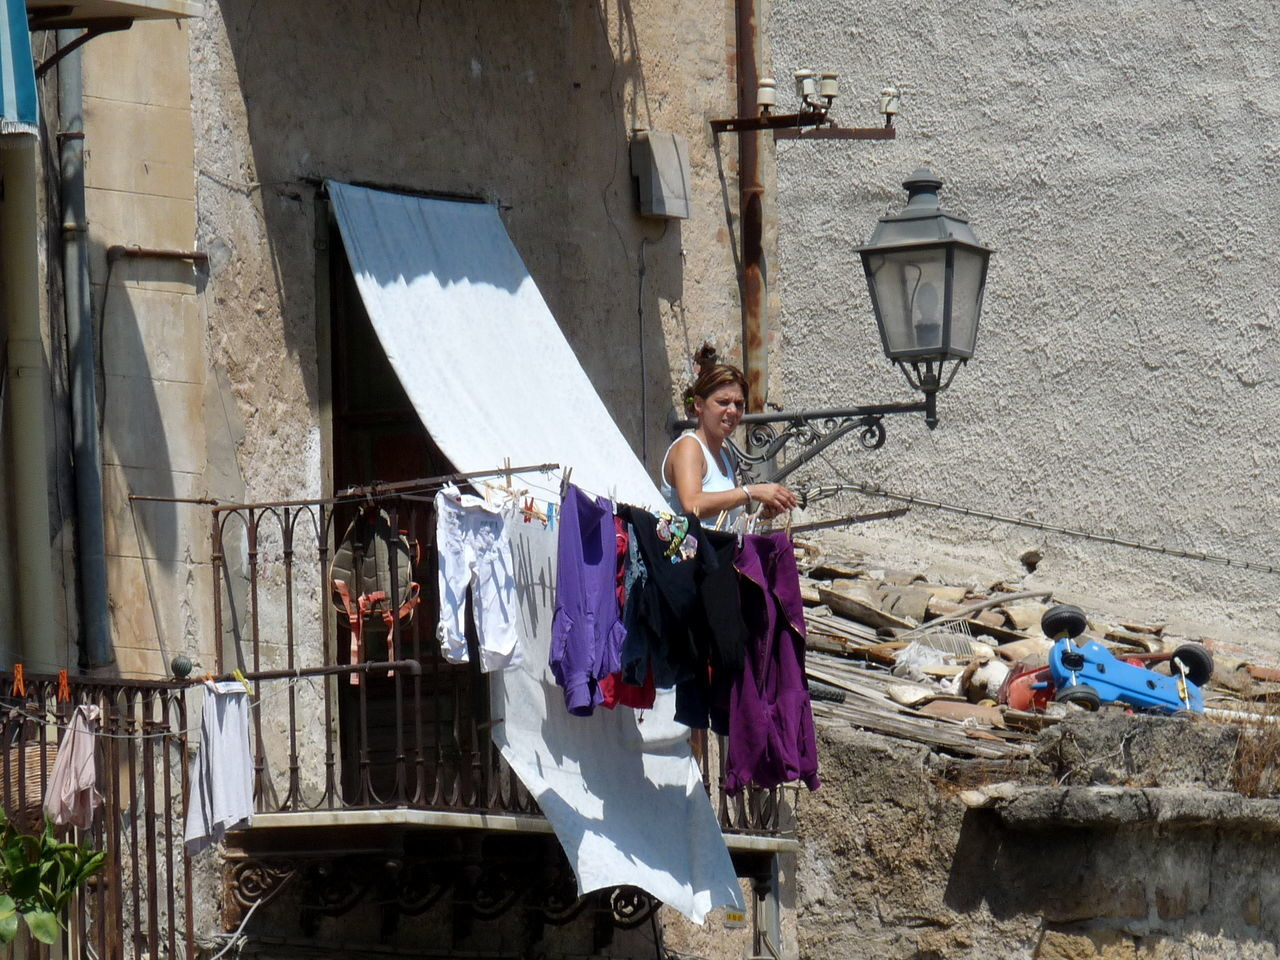 Balcony Building Exterior Drying Laundry Everyday Life Lifestyles light and reflection Outdoors Real People Sunshade Adapted To The City